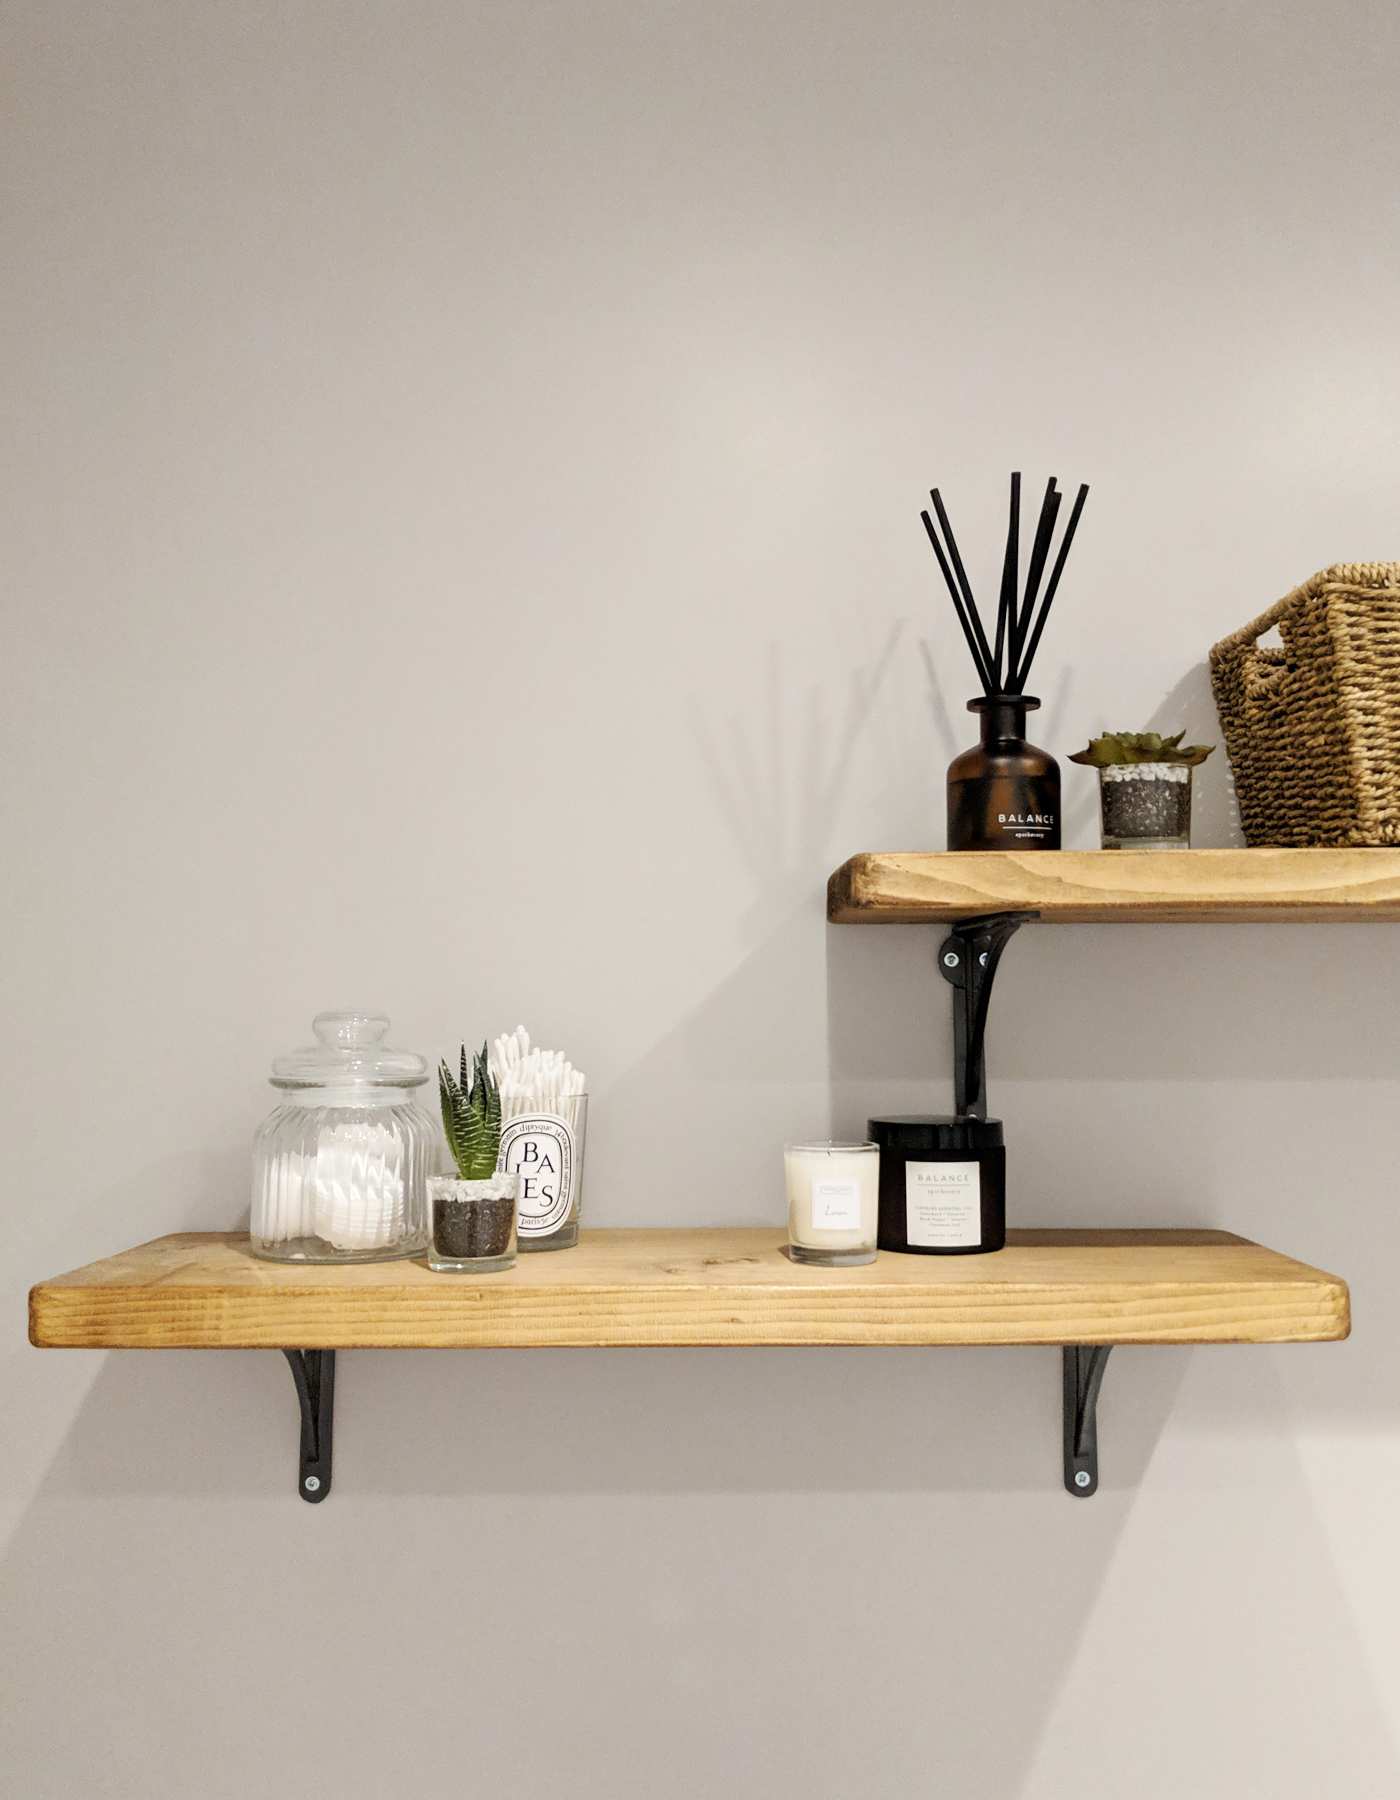 Etsy recycled wooden shelves